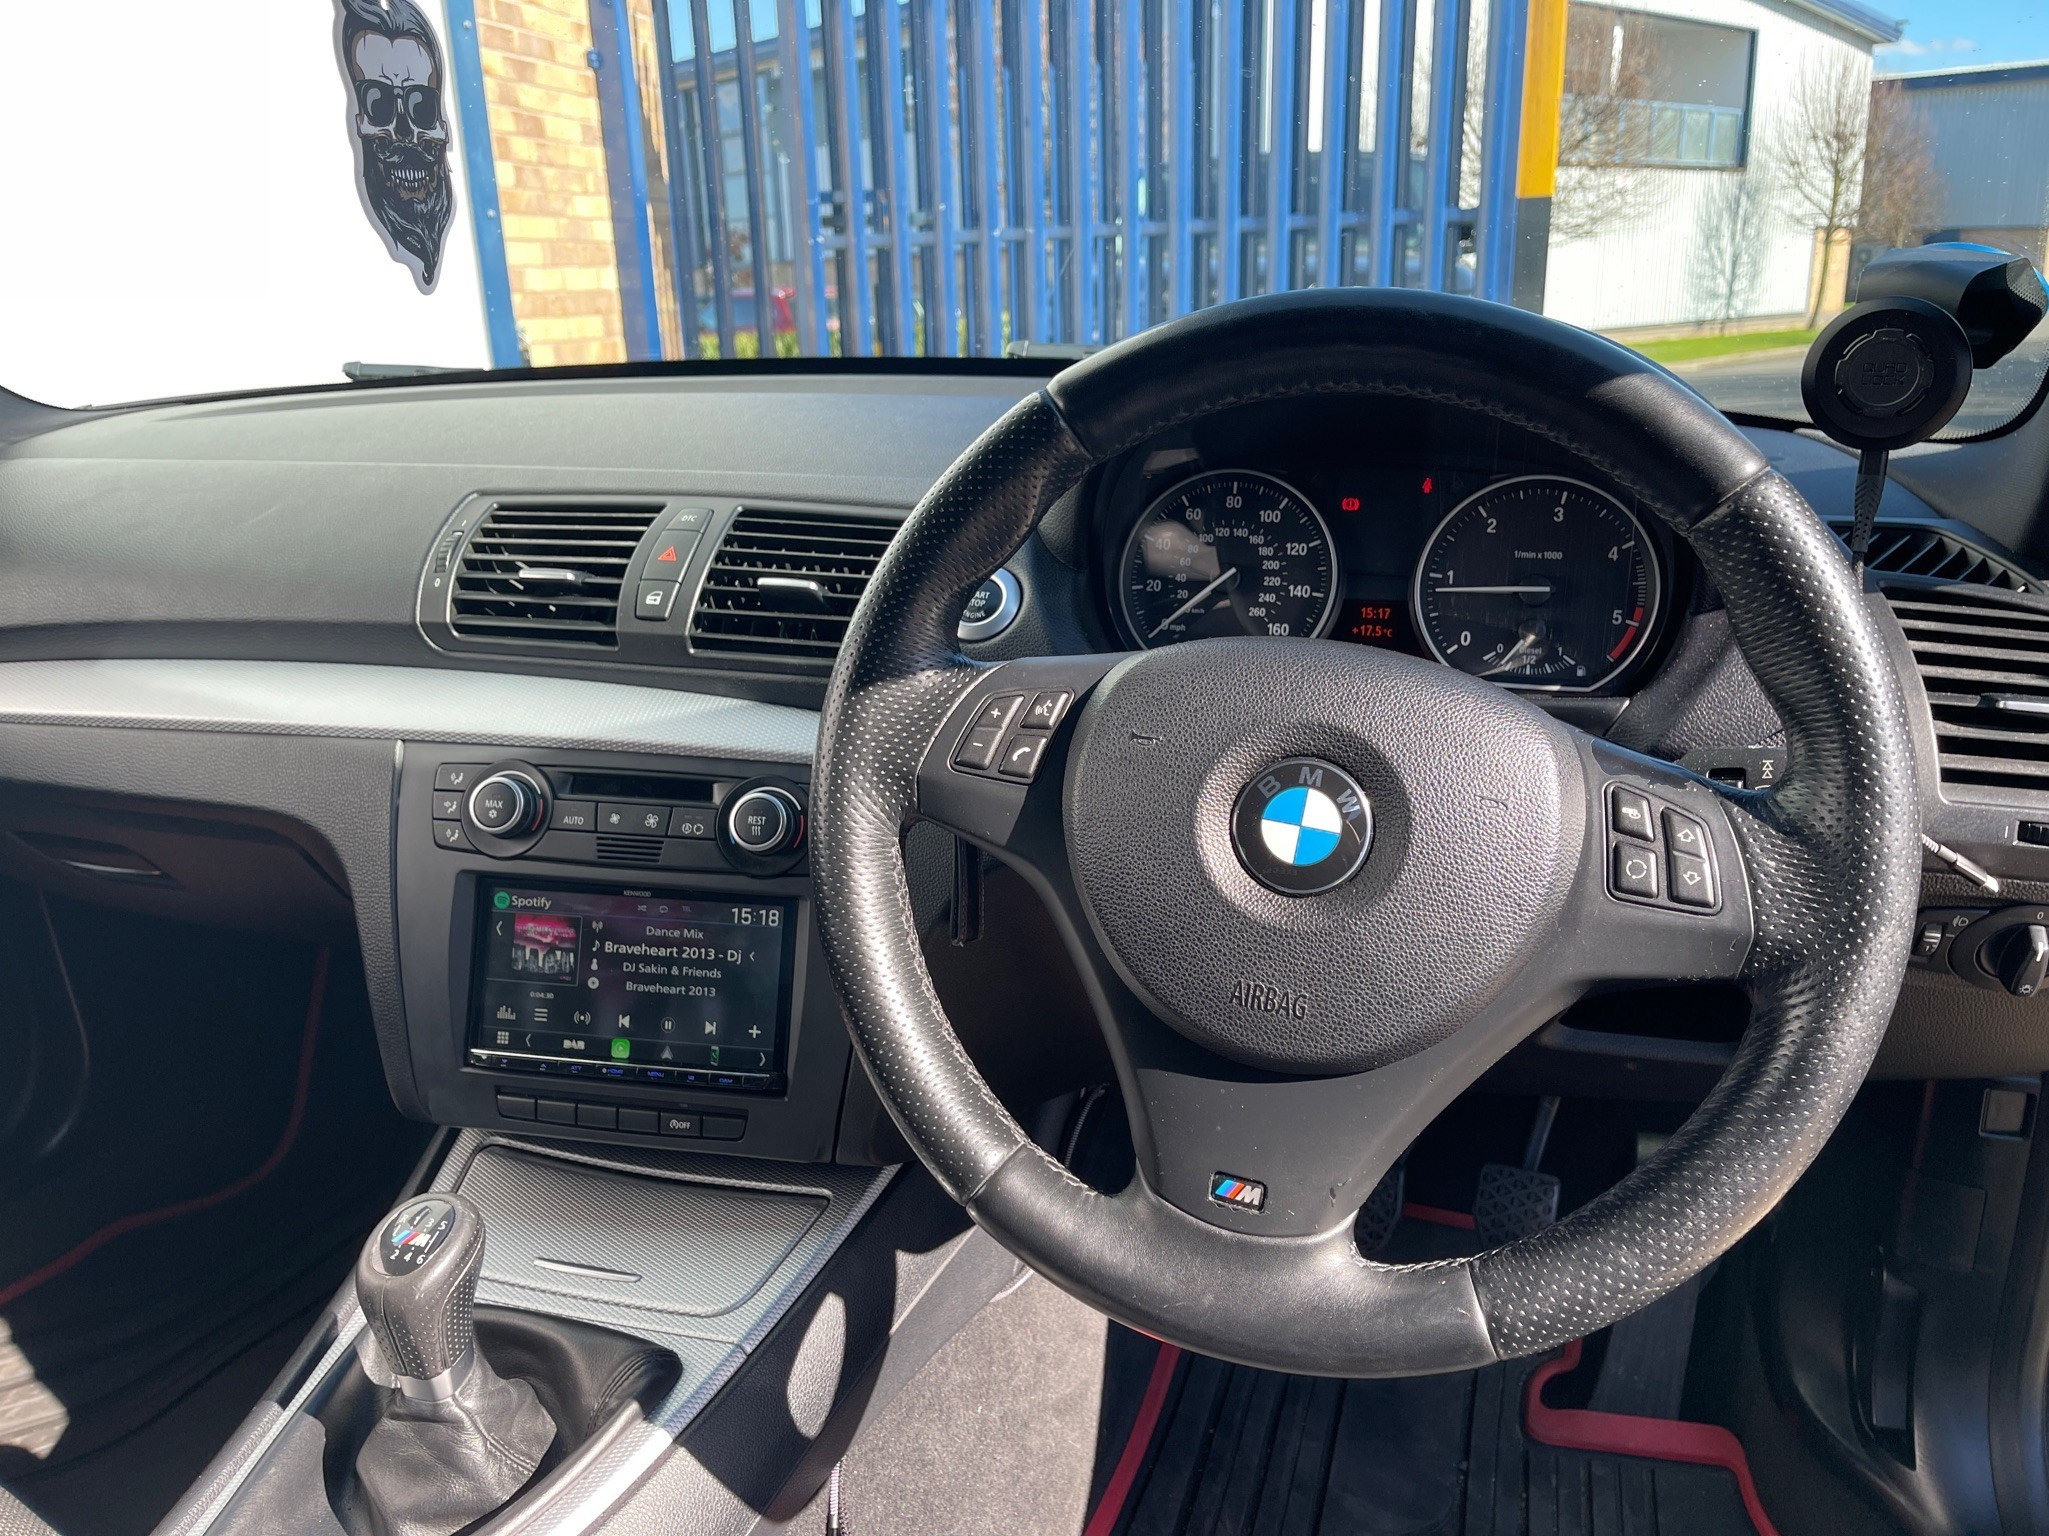 BMW 1 Series Stereo Upgrade Nottingham, Derby & Leicester